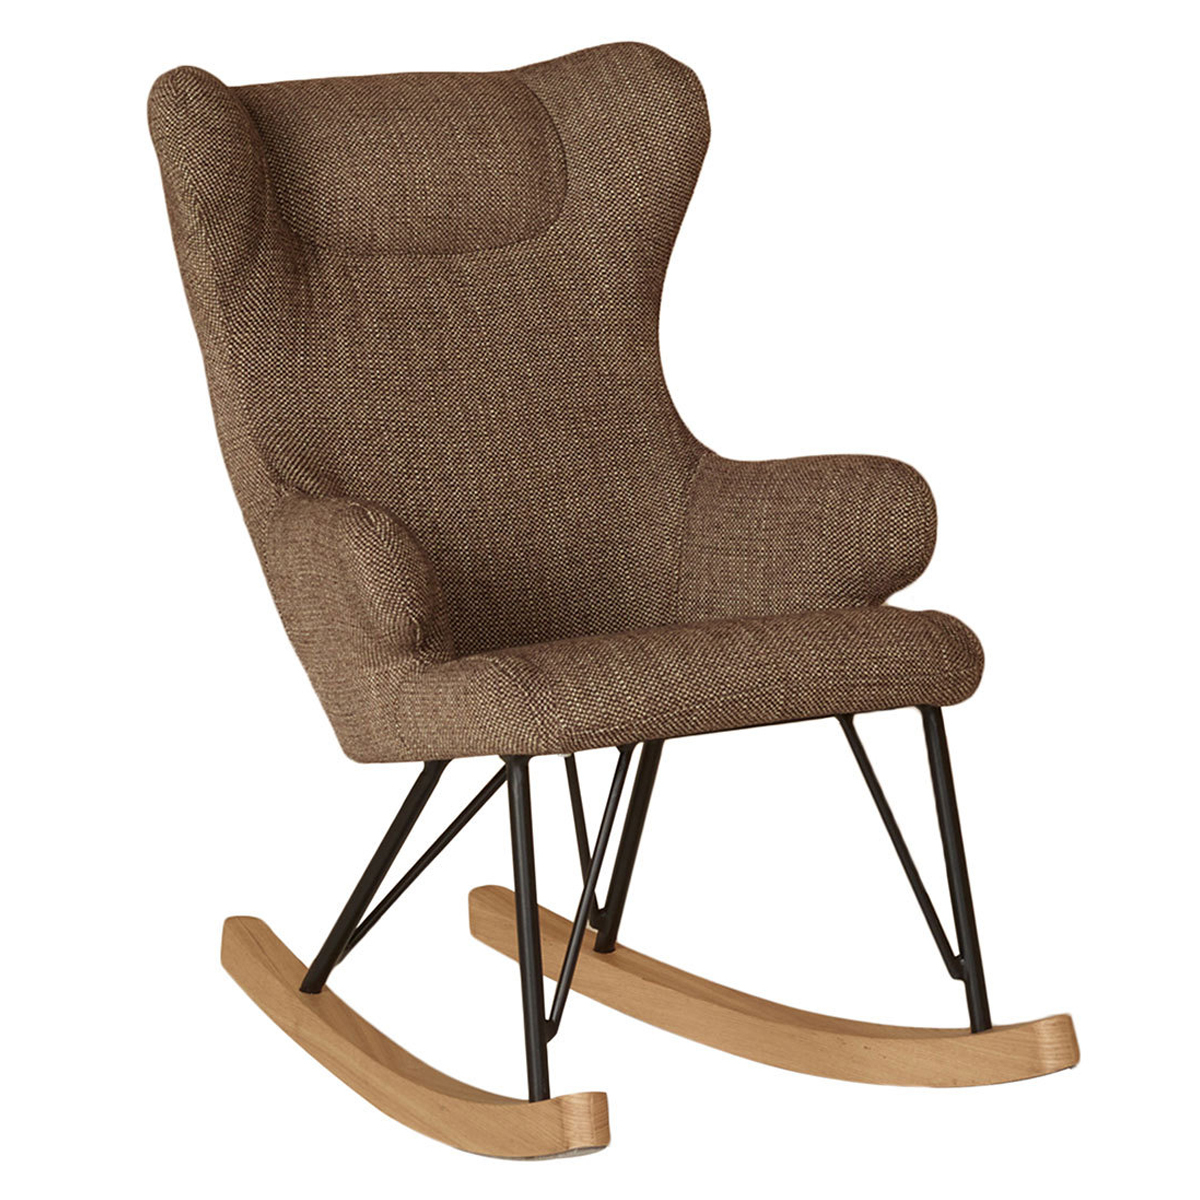 Fauteuil Rocking Kids Chair De Luxe - Latte Rocking Kids Chair De Luxe - Latte